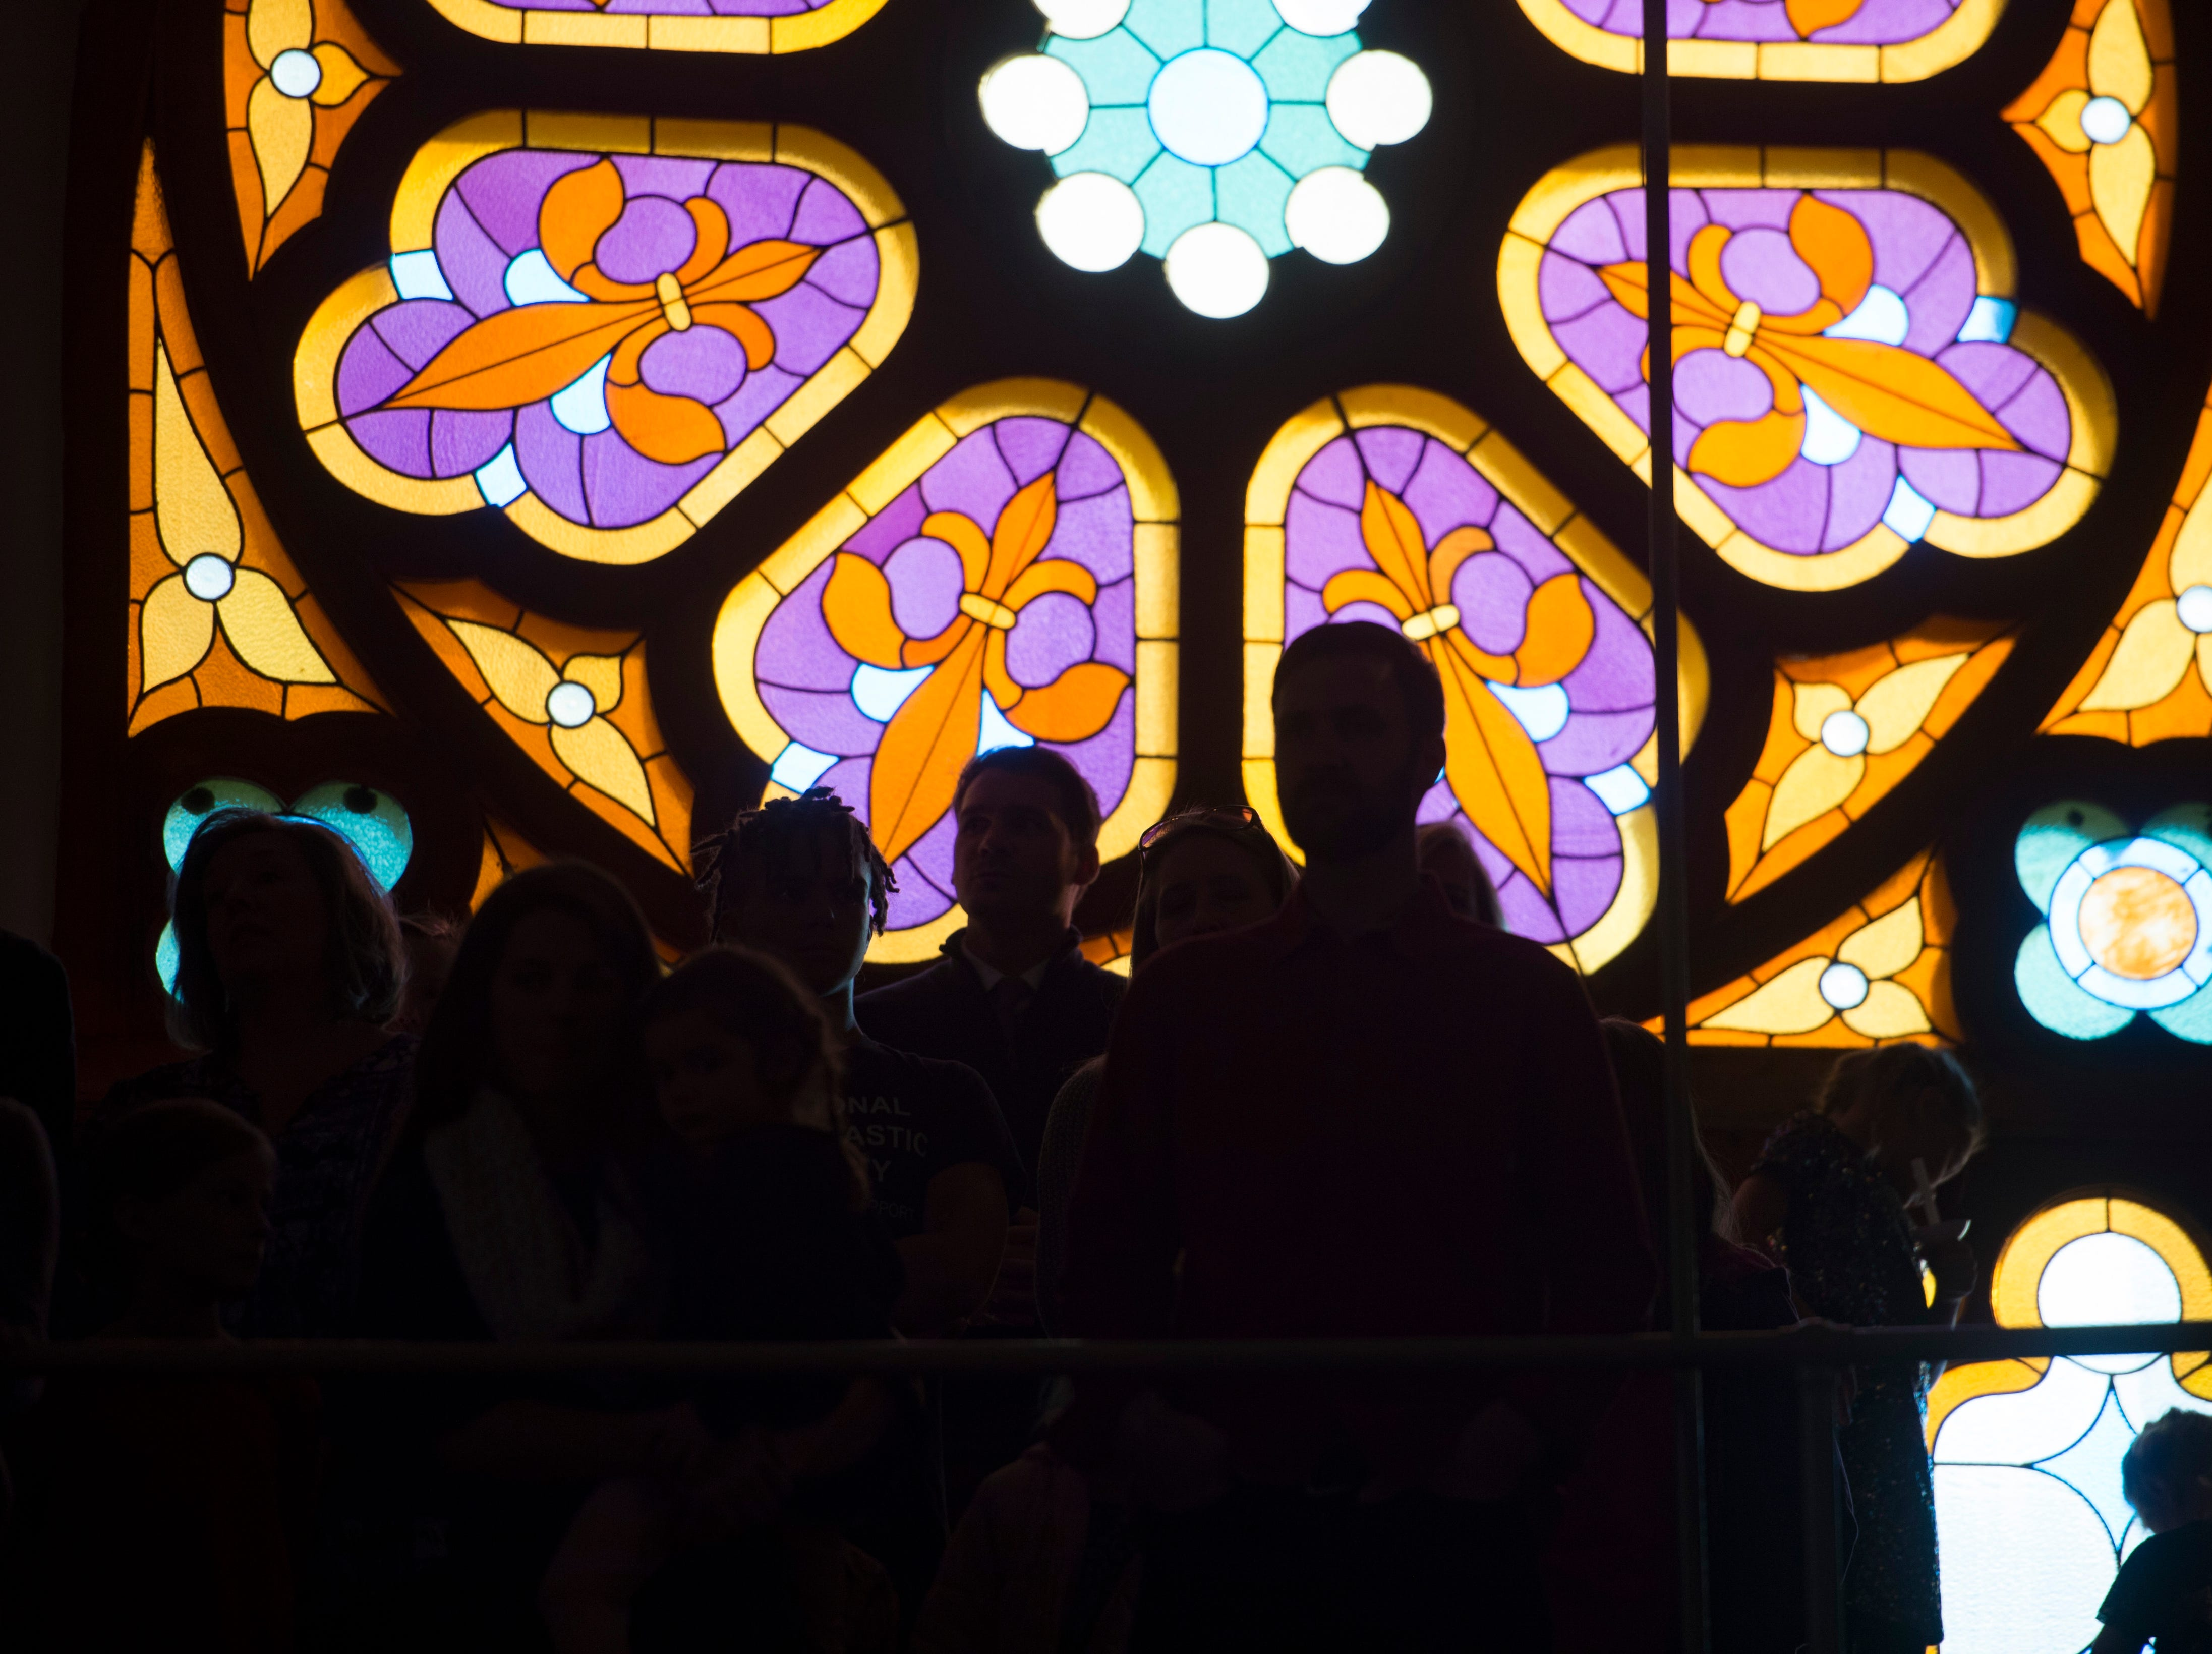 People are silhouetted against stained glass during a candlelight service at Mountain View Community Church on Monday, December 24, 2018.